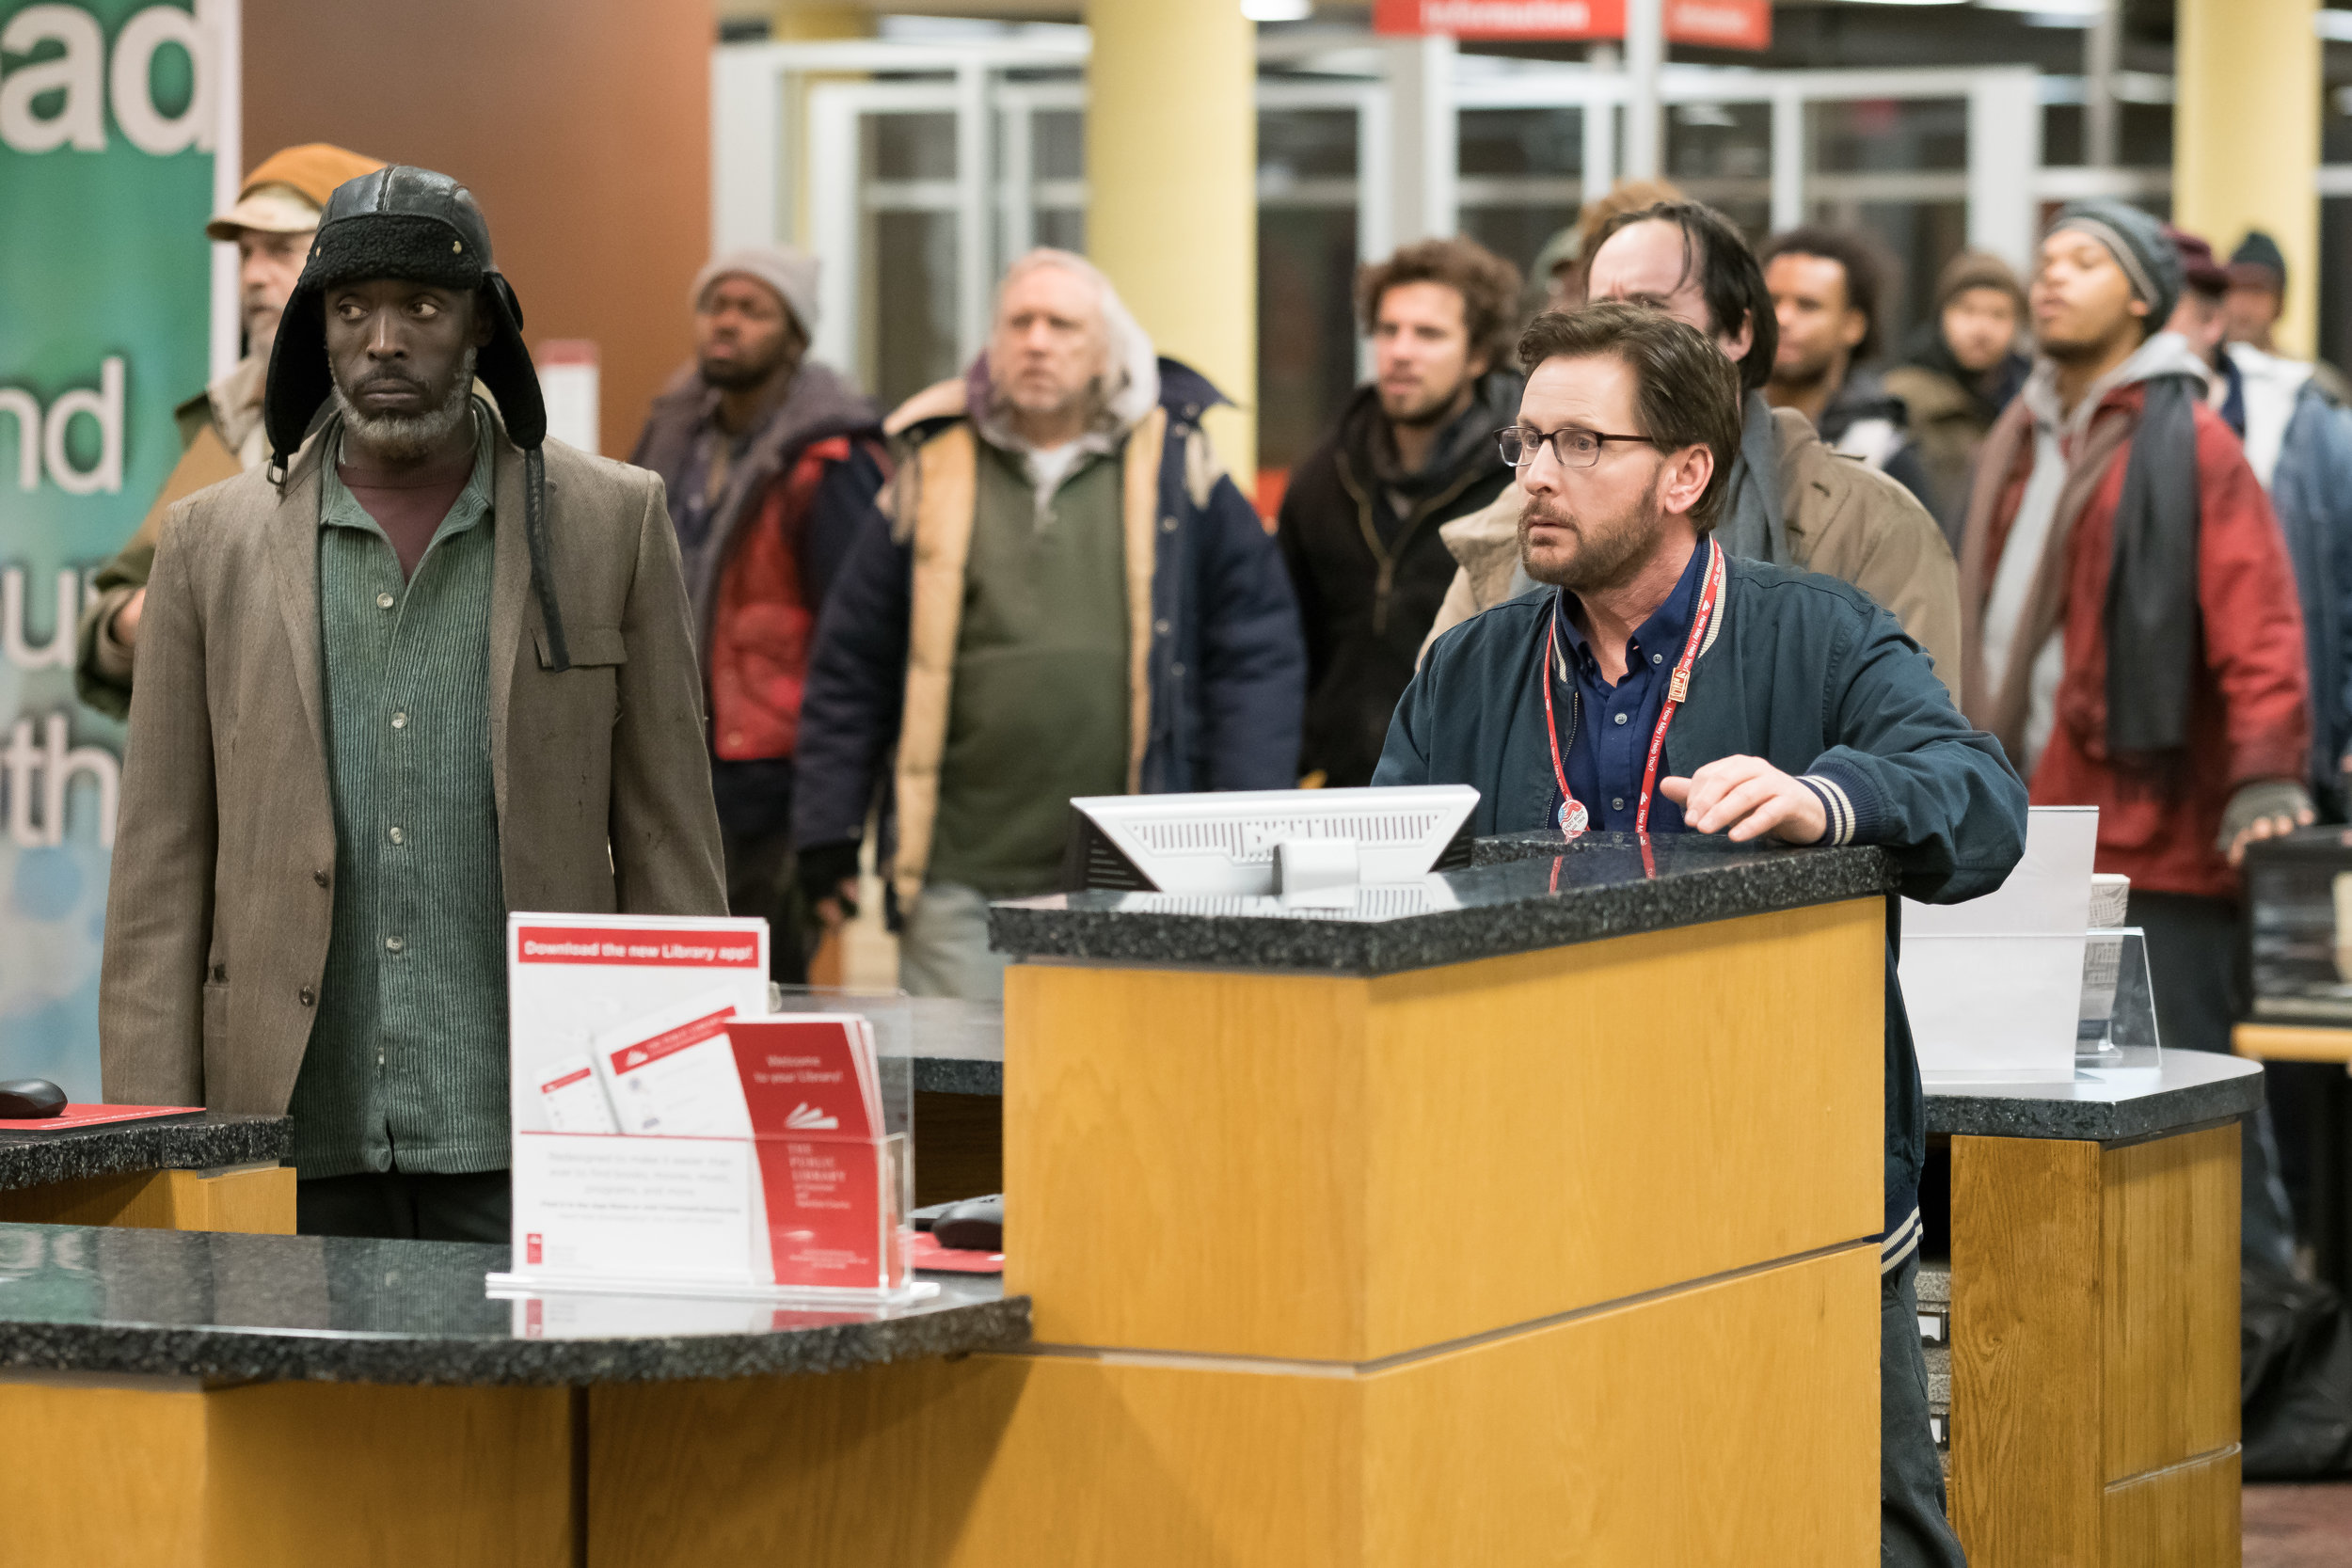 """Librarian Stuart Goodson (Emilio Estevez, center) becomes the spokesman for a group of homeless people, including Jackson (Michael K. Williams, at left), who have staged a sit-in at The Public Library of Cincinnati, in the comedy-drama """"The Public,"""" written and directed by Estevez. (Photo courtesy Greenwich Entertainment)"""